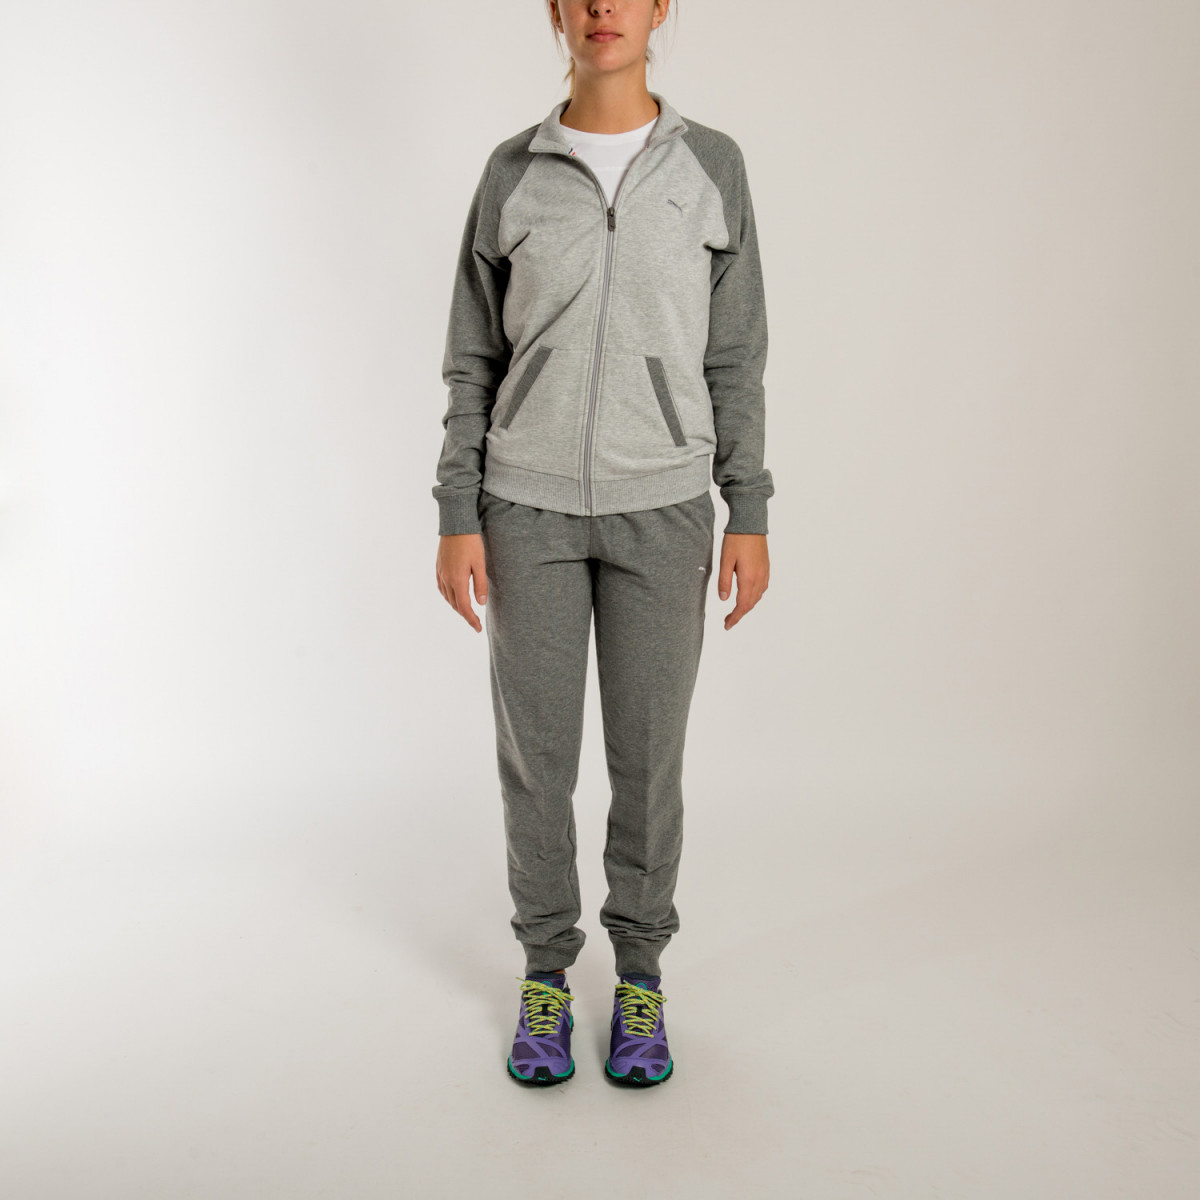 CONJUNTO PUMA FUN SWEAT SUIT W